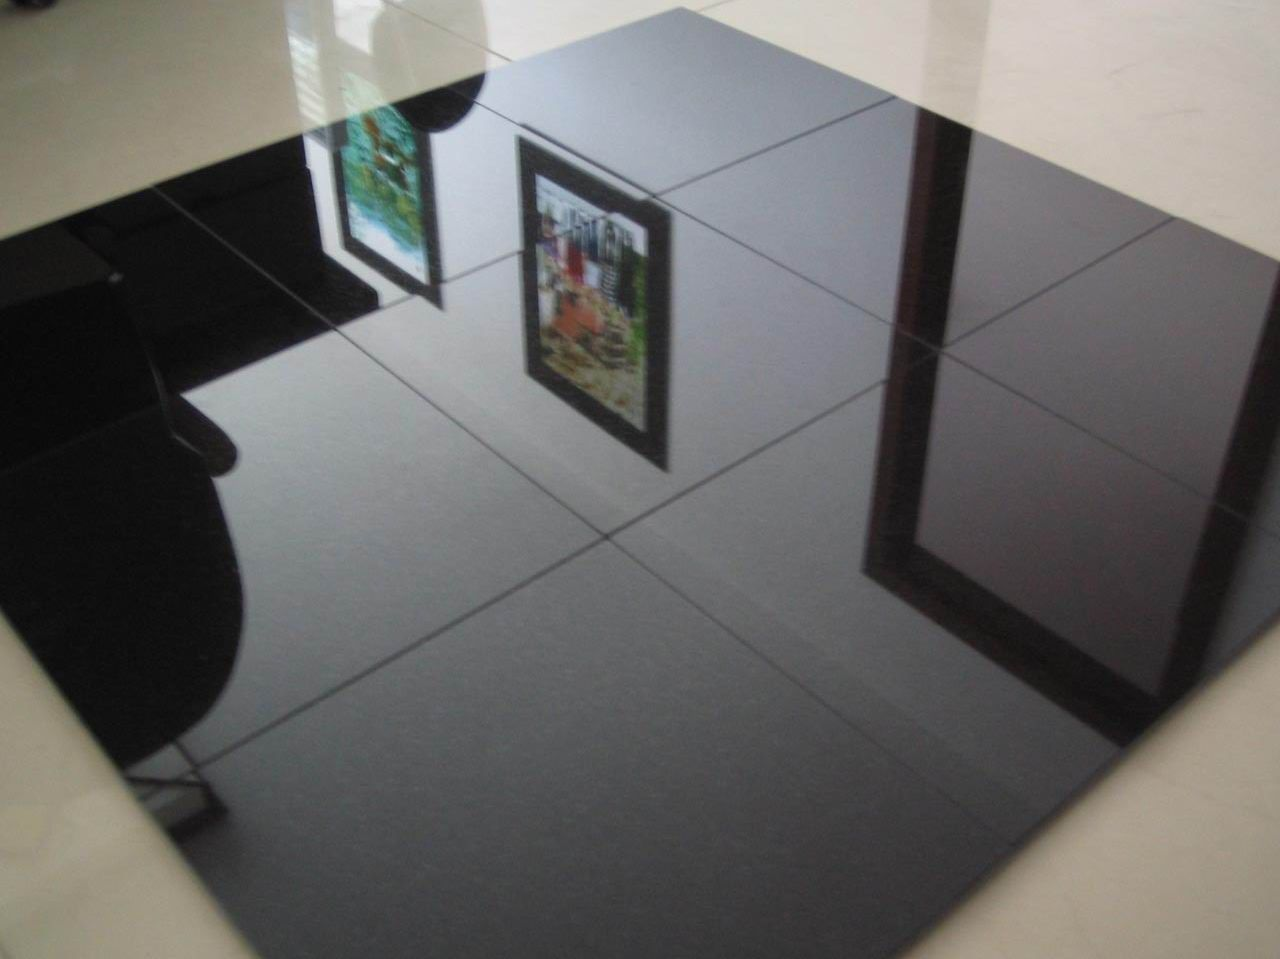 Black Tiled Floor And Walls Natural Shanxi Black Granite Flooring Tiles Sell Black Granite Tiles Granite Flooring Black Floor Tiles Black Granite Tile